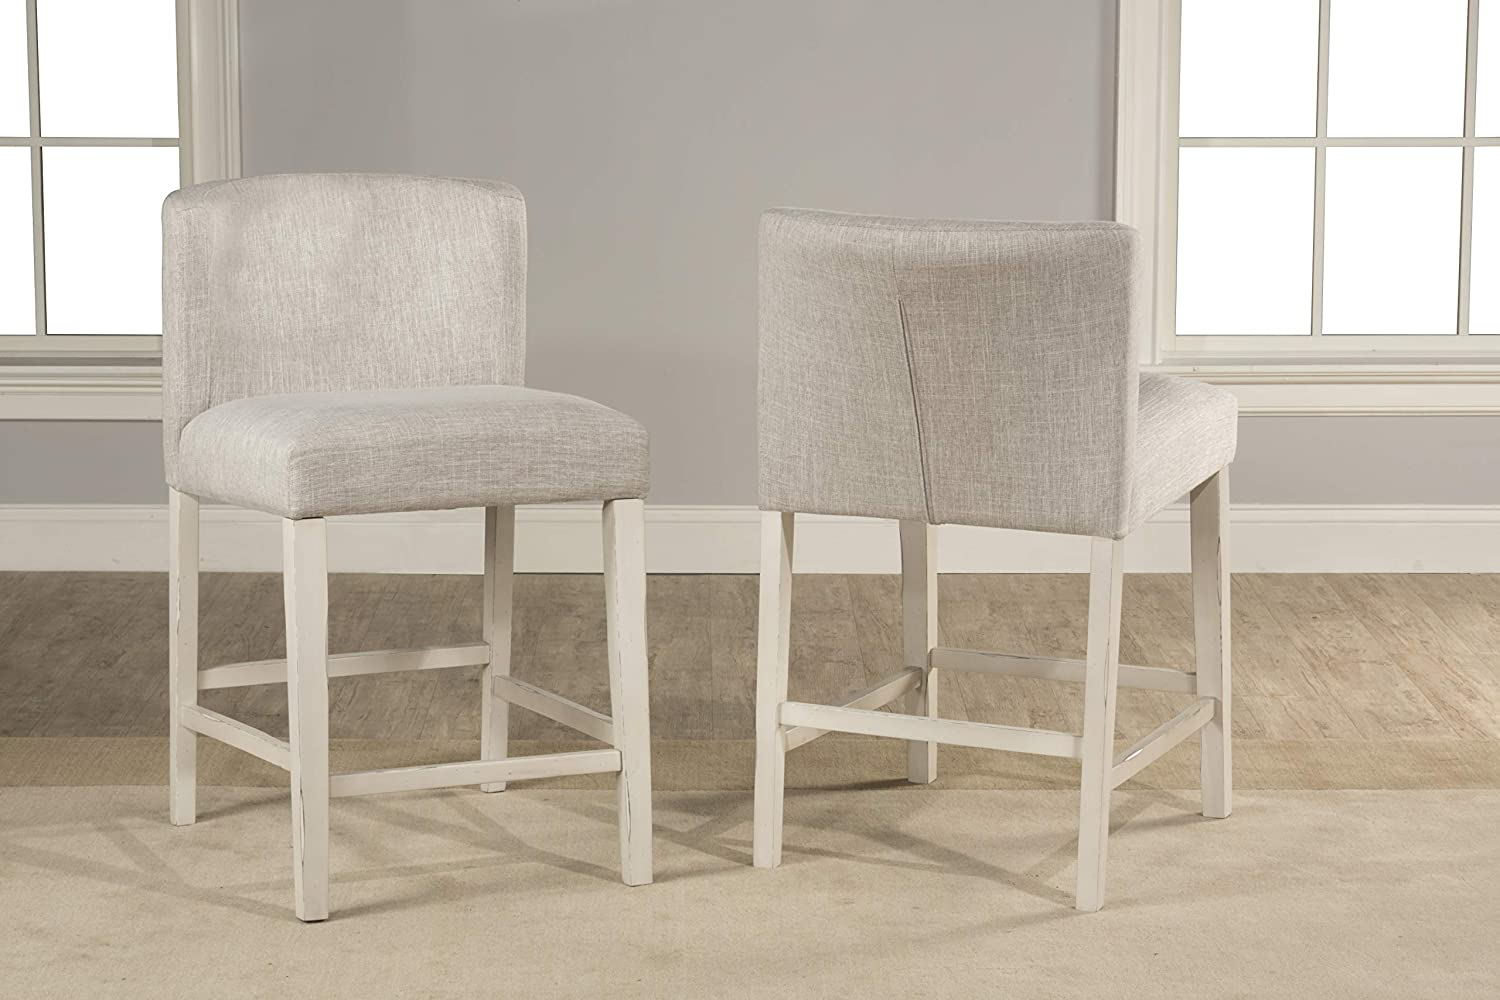 Hillsdale Furniture Hillsdale Clarion Upholstered Wing Arm Height Non-Swivel Counter Stool Set Sea White